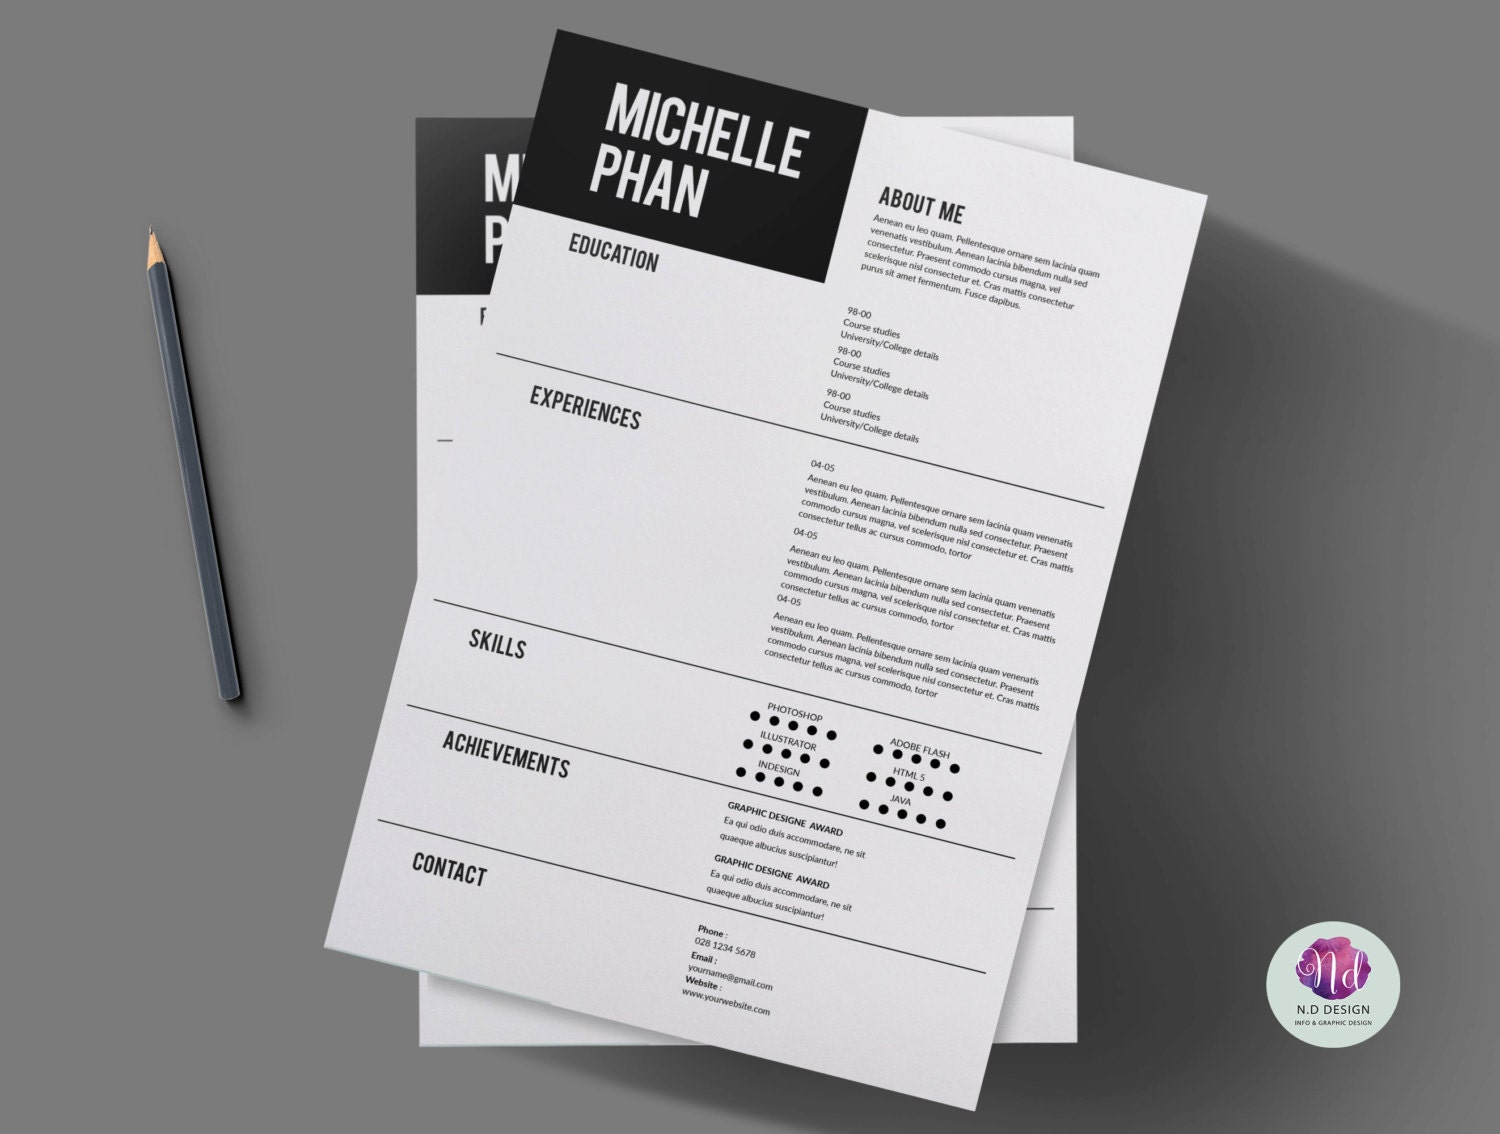 How To Make A Presentable Curriculum Vitae